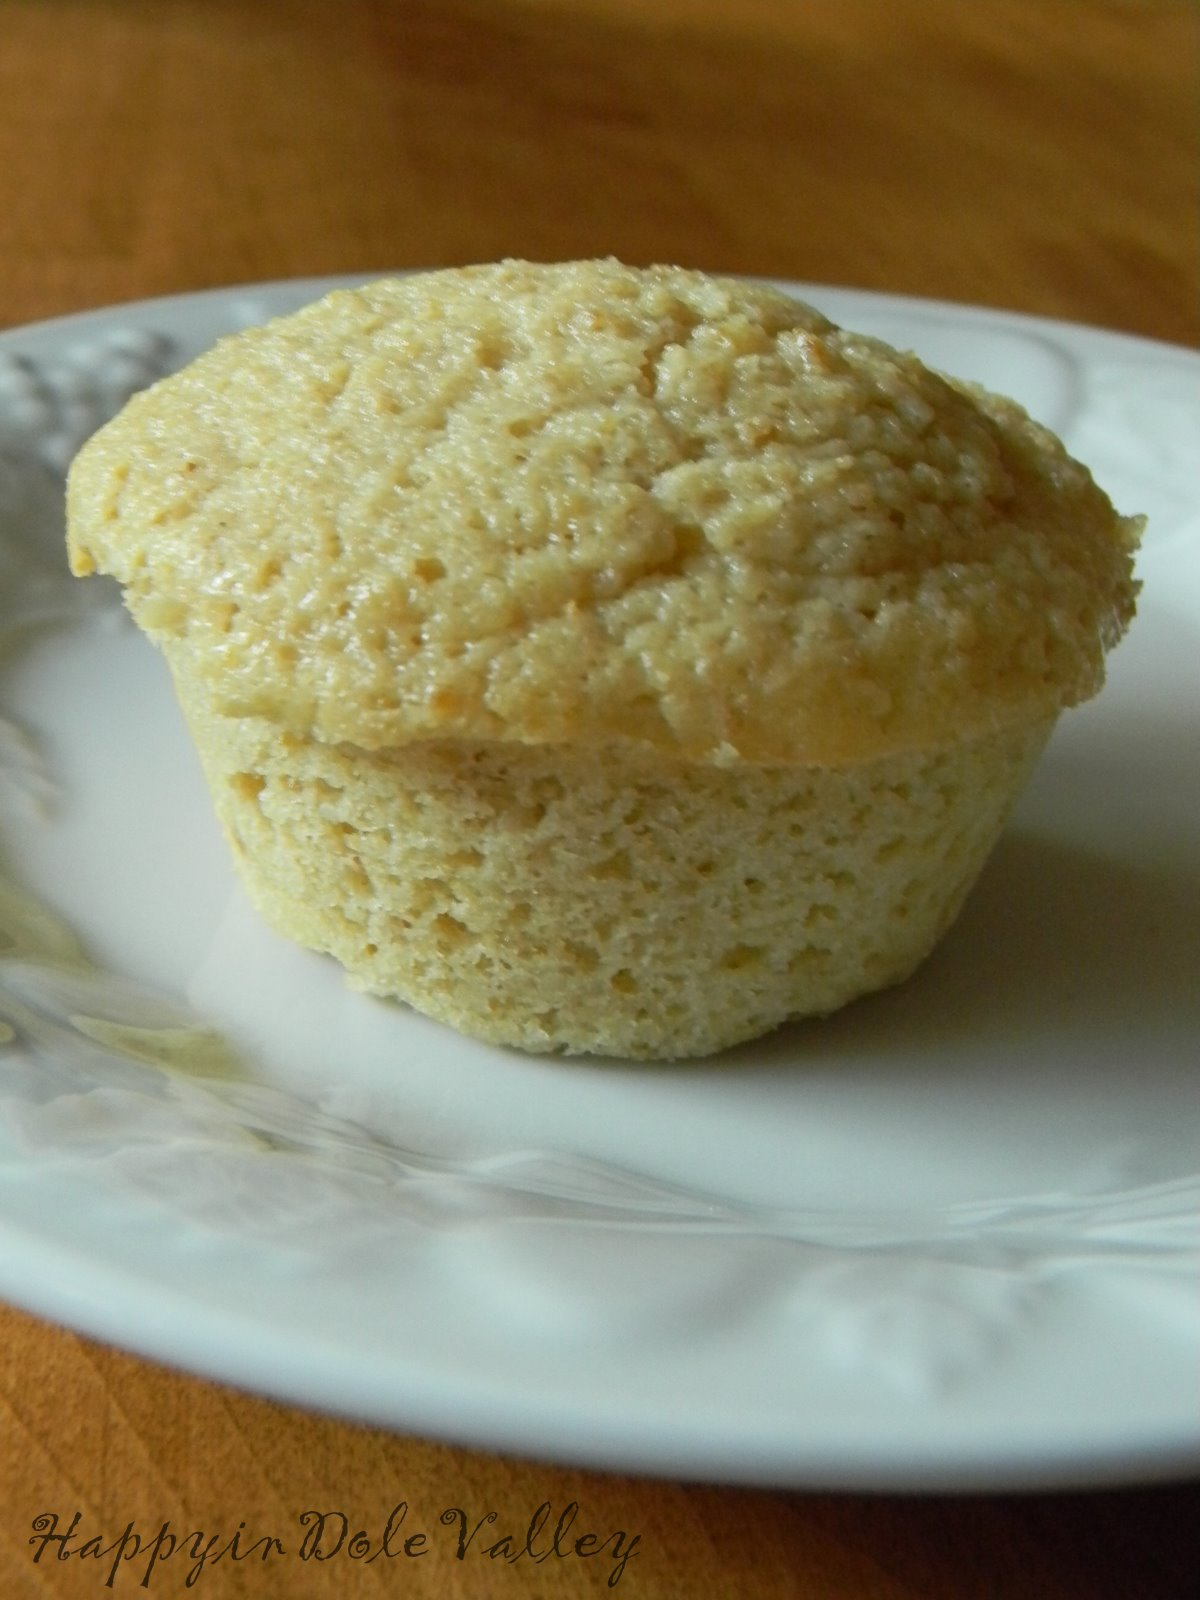 Happy in Dole Valley: Muffin Monday - Super Moist Lemon Yogurt Muffins